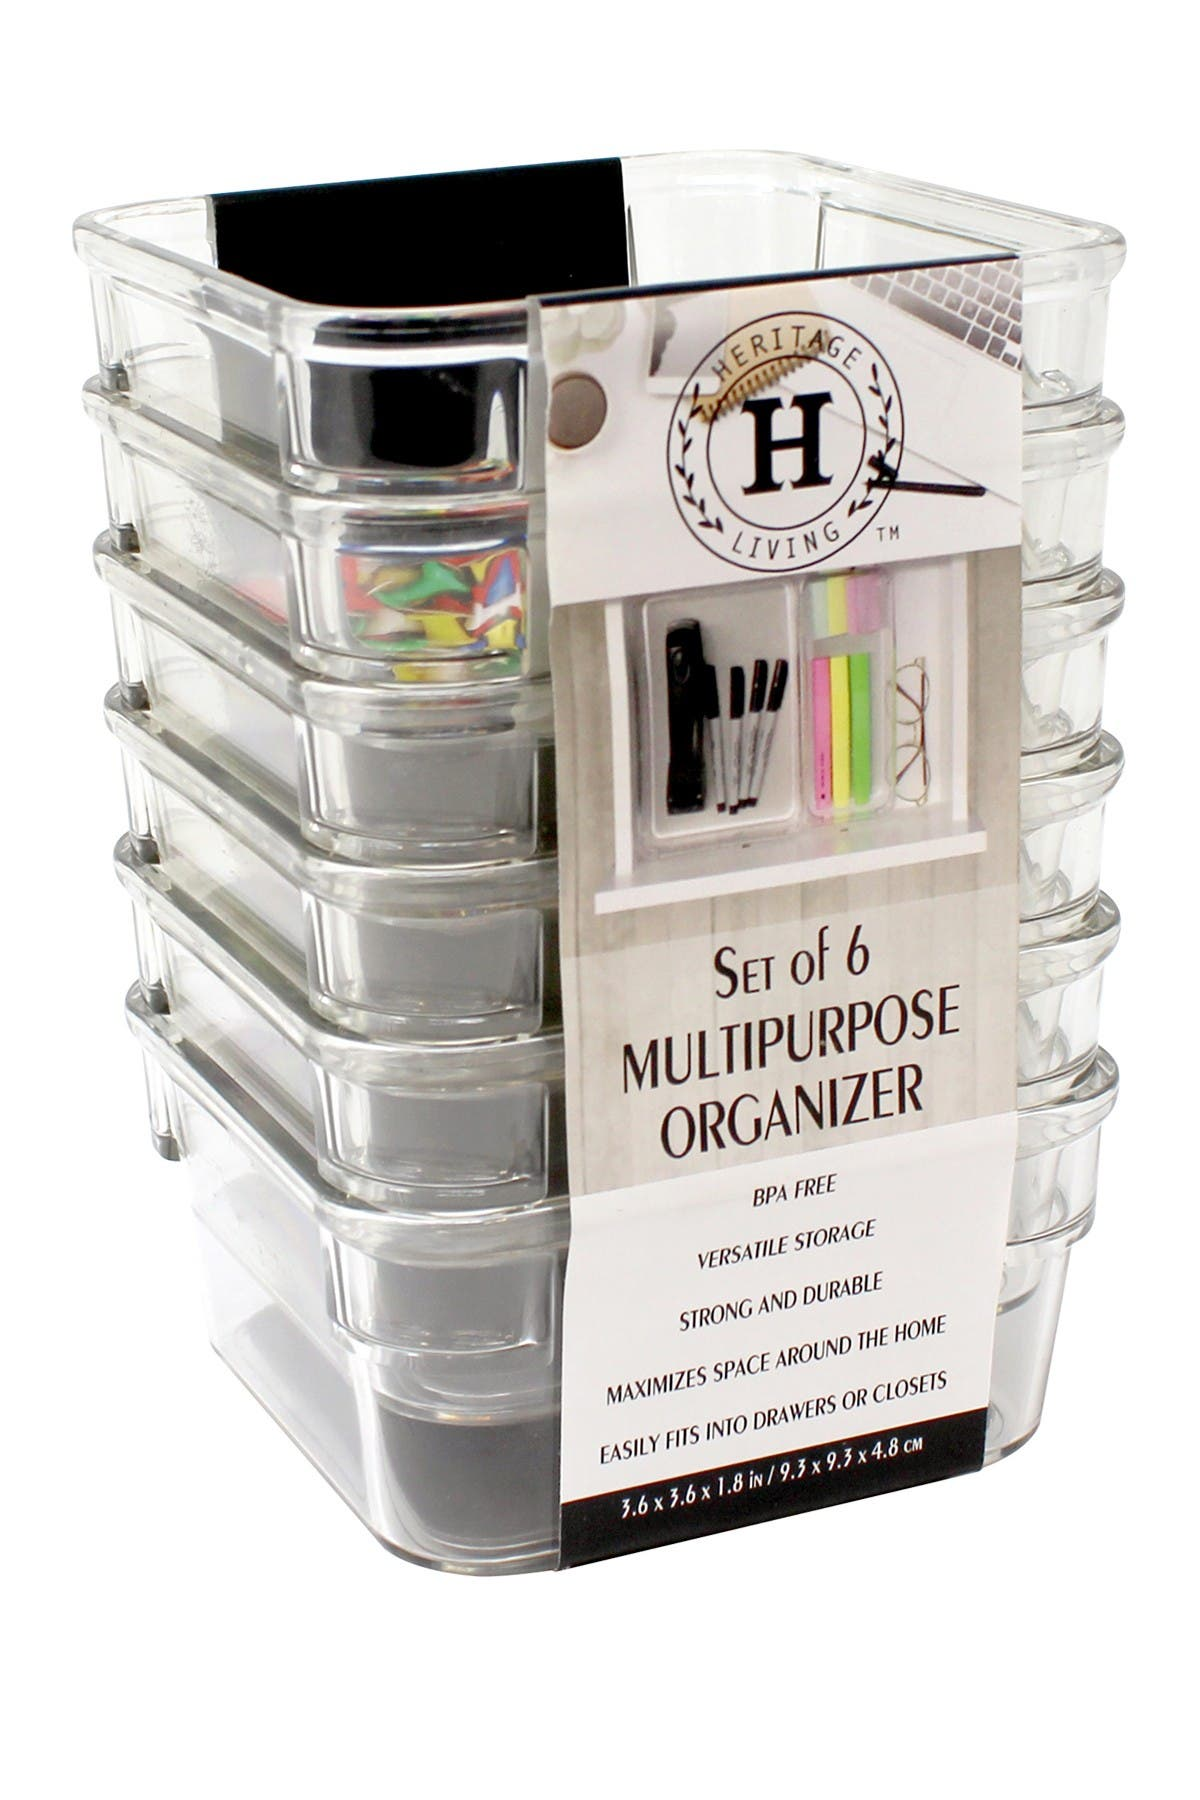 Image of Gourmet Home Heritage Clear Multipurpose Organizers - Set of 6